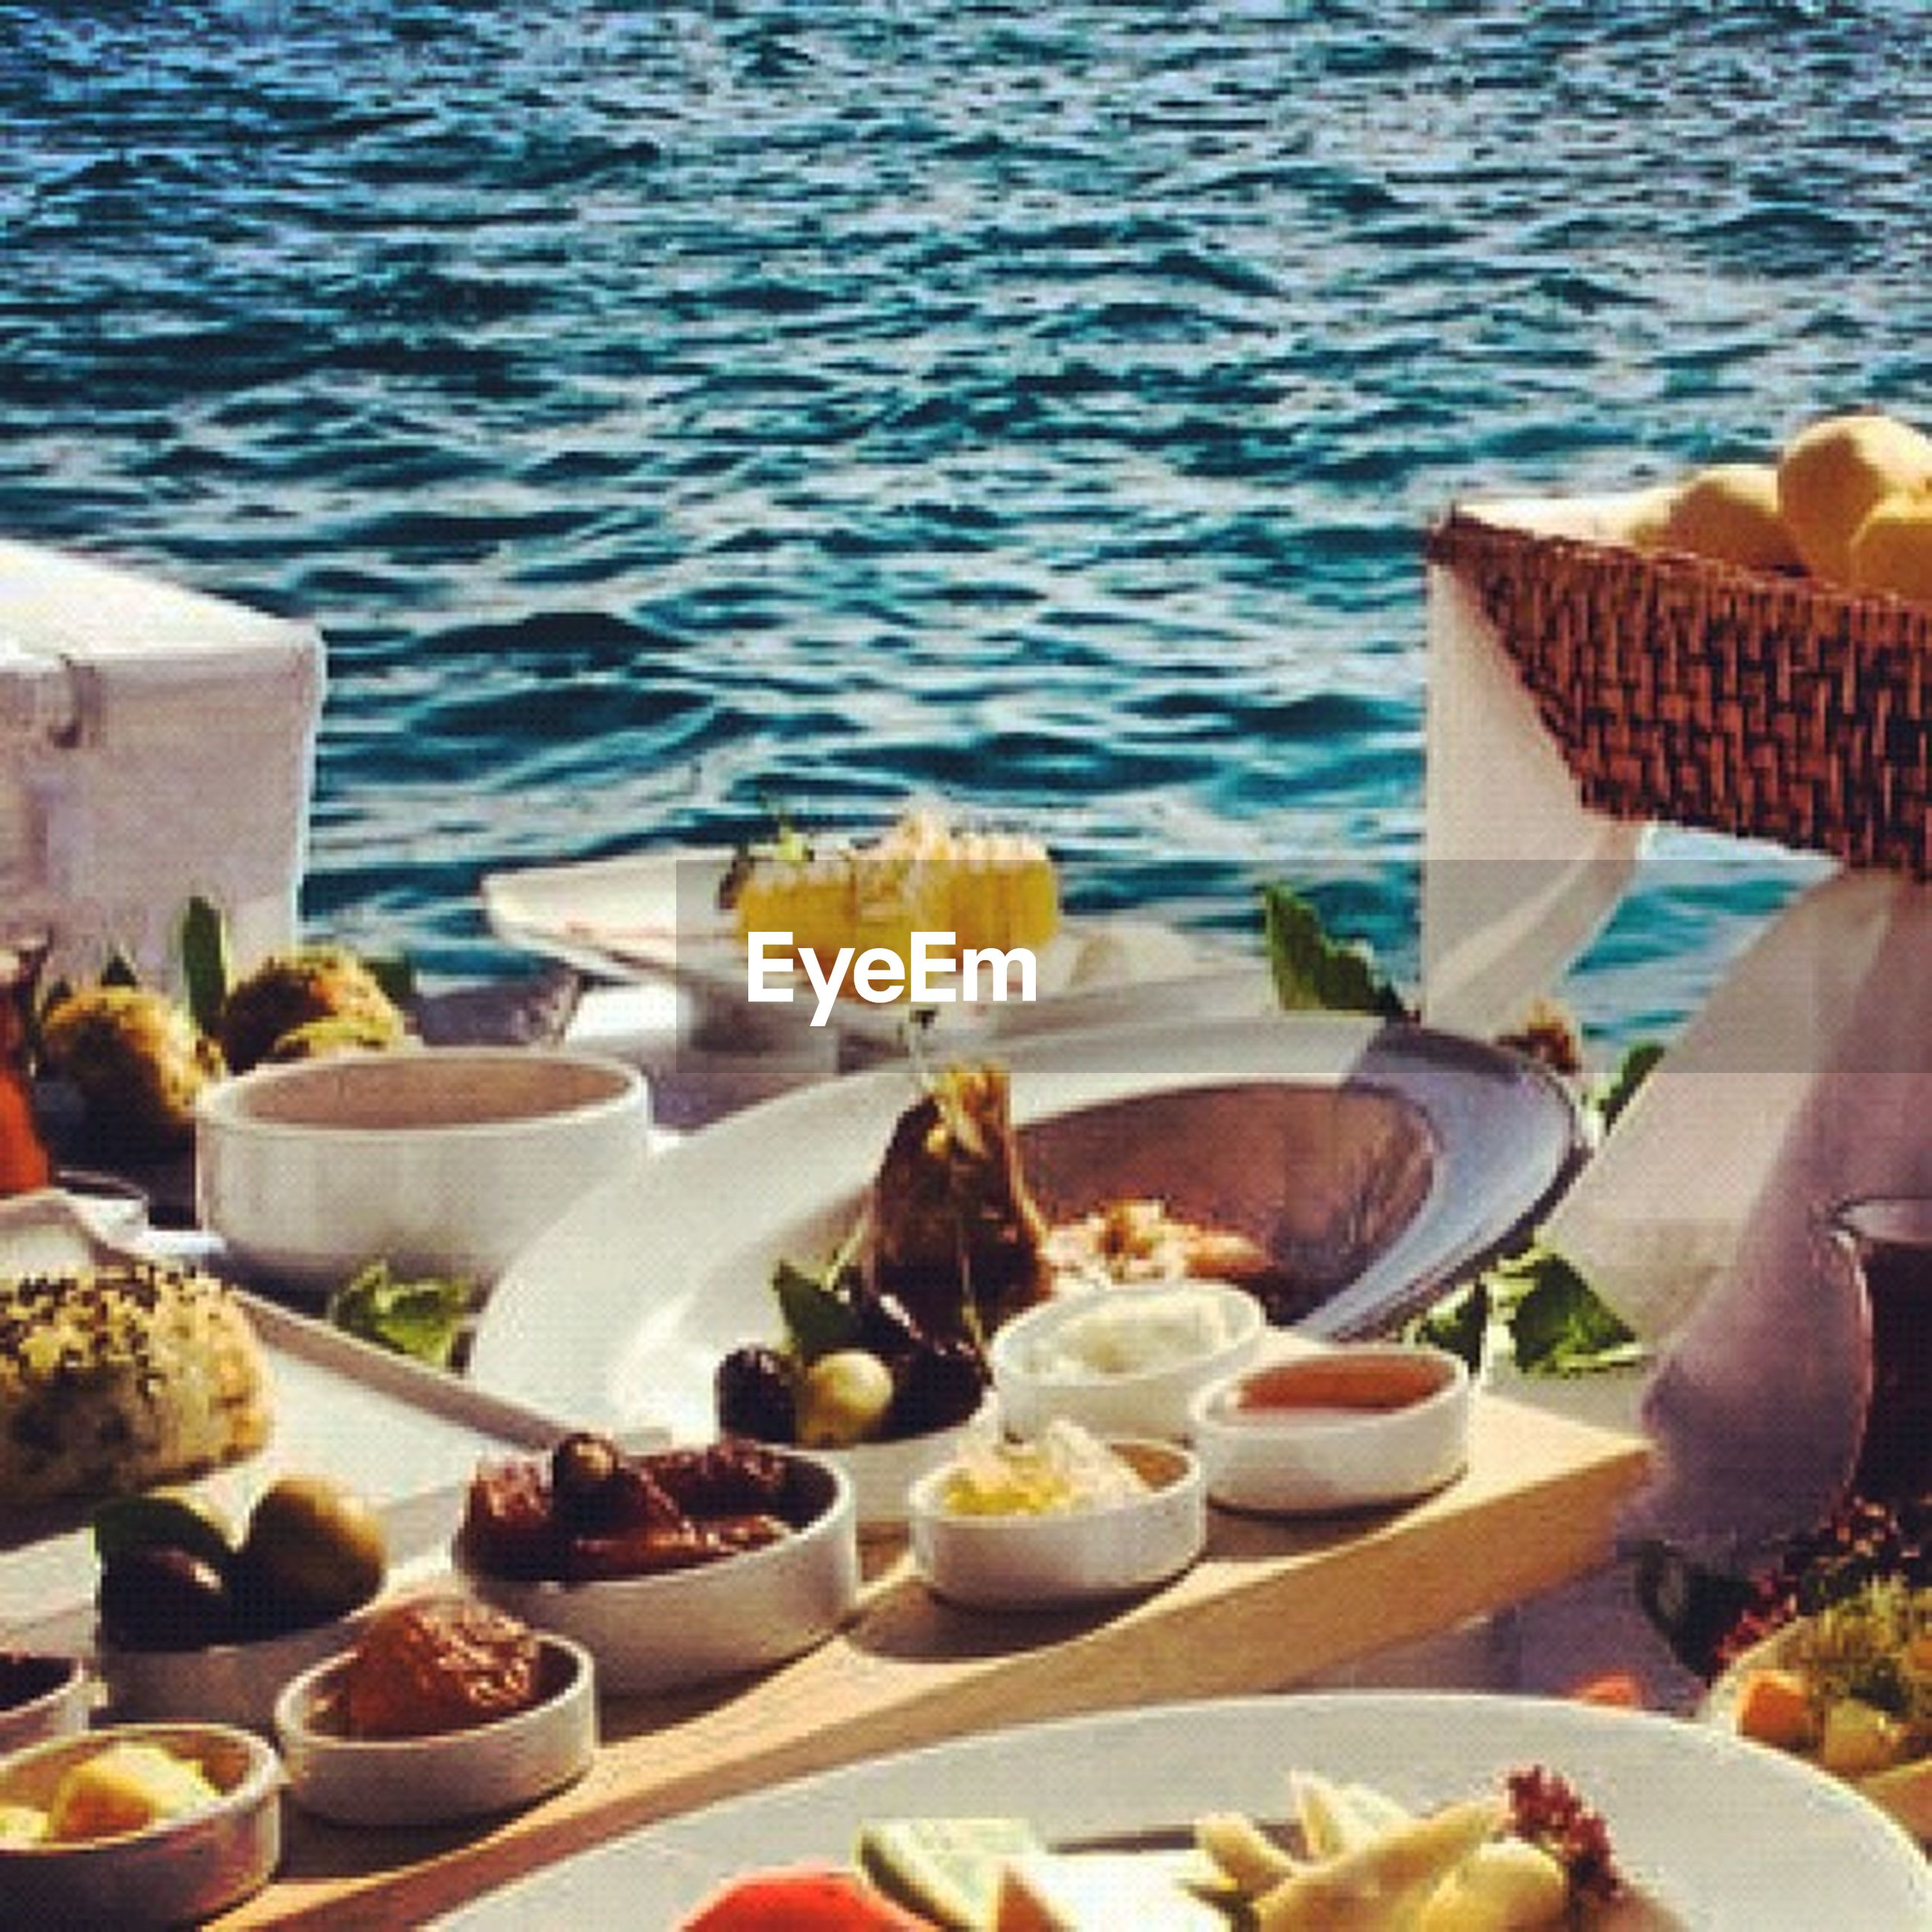 water, sea, table, food and drink, plate, chair, beach, freshness, high angle view, restaurant, day, sunlight, place setting, relaxation, food, arrangement, lounge chair, variation, tablecloth, summer